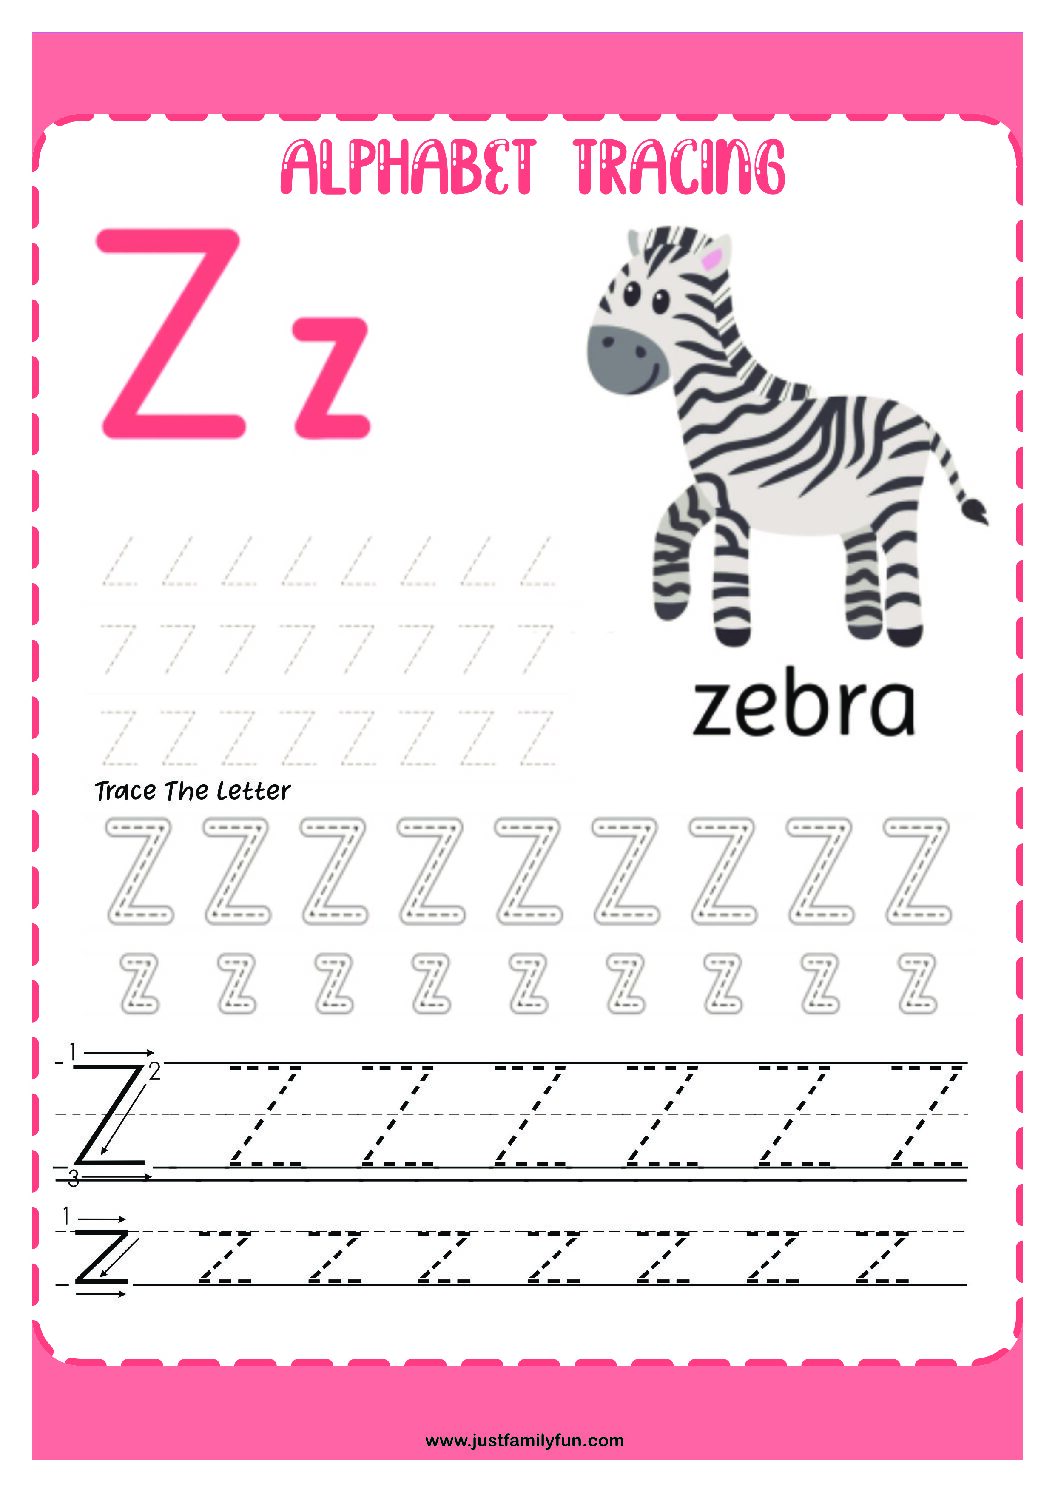 Alphabets_26-pdf Free Printable Trace The Alphabet Worksheets for Kids.